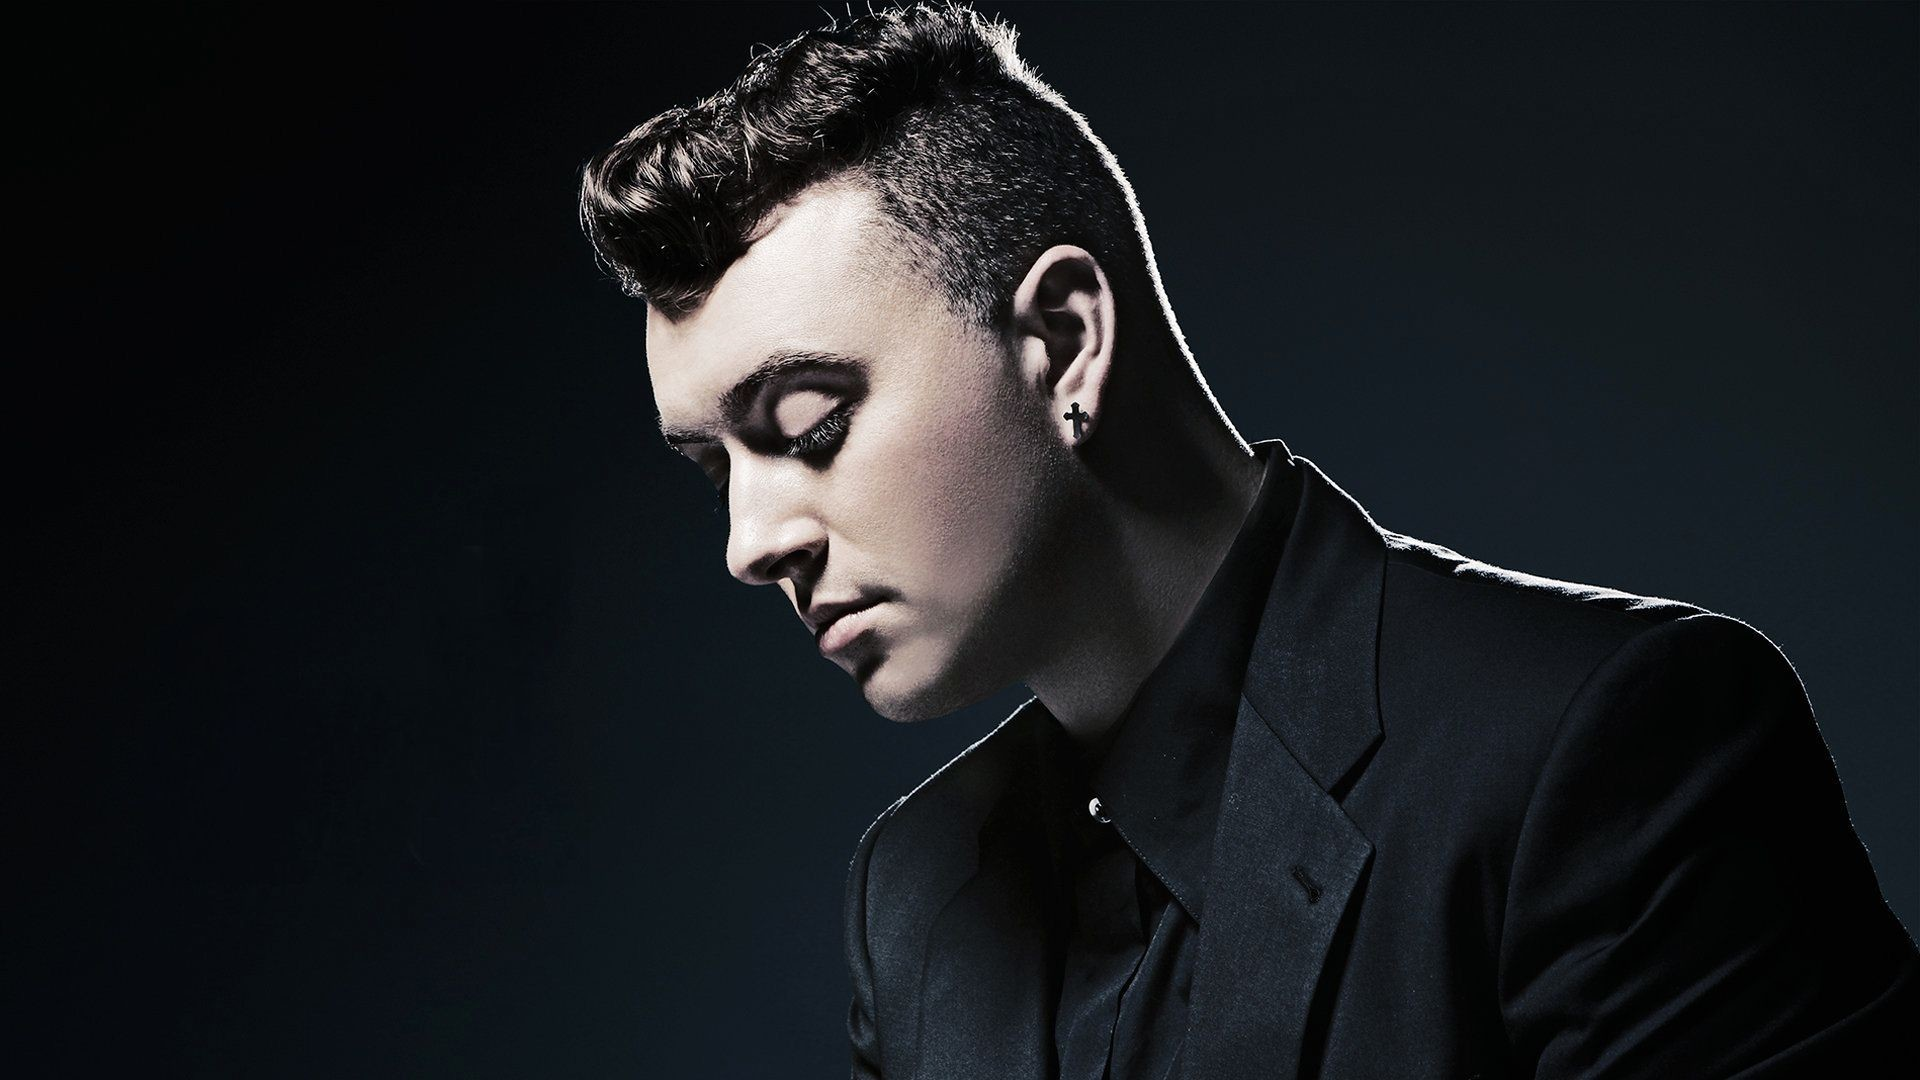 Widescreen Sam Smith Wallpapers | Dot Aceuedo, 1920×1080